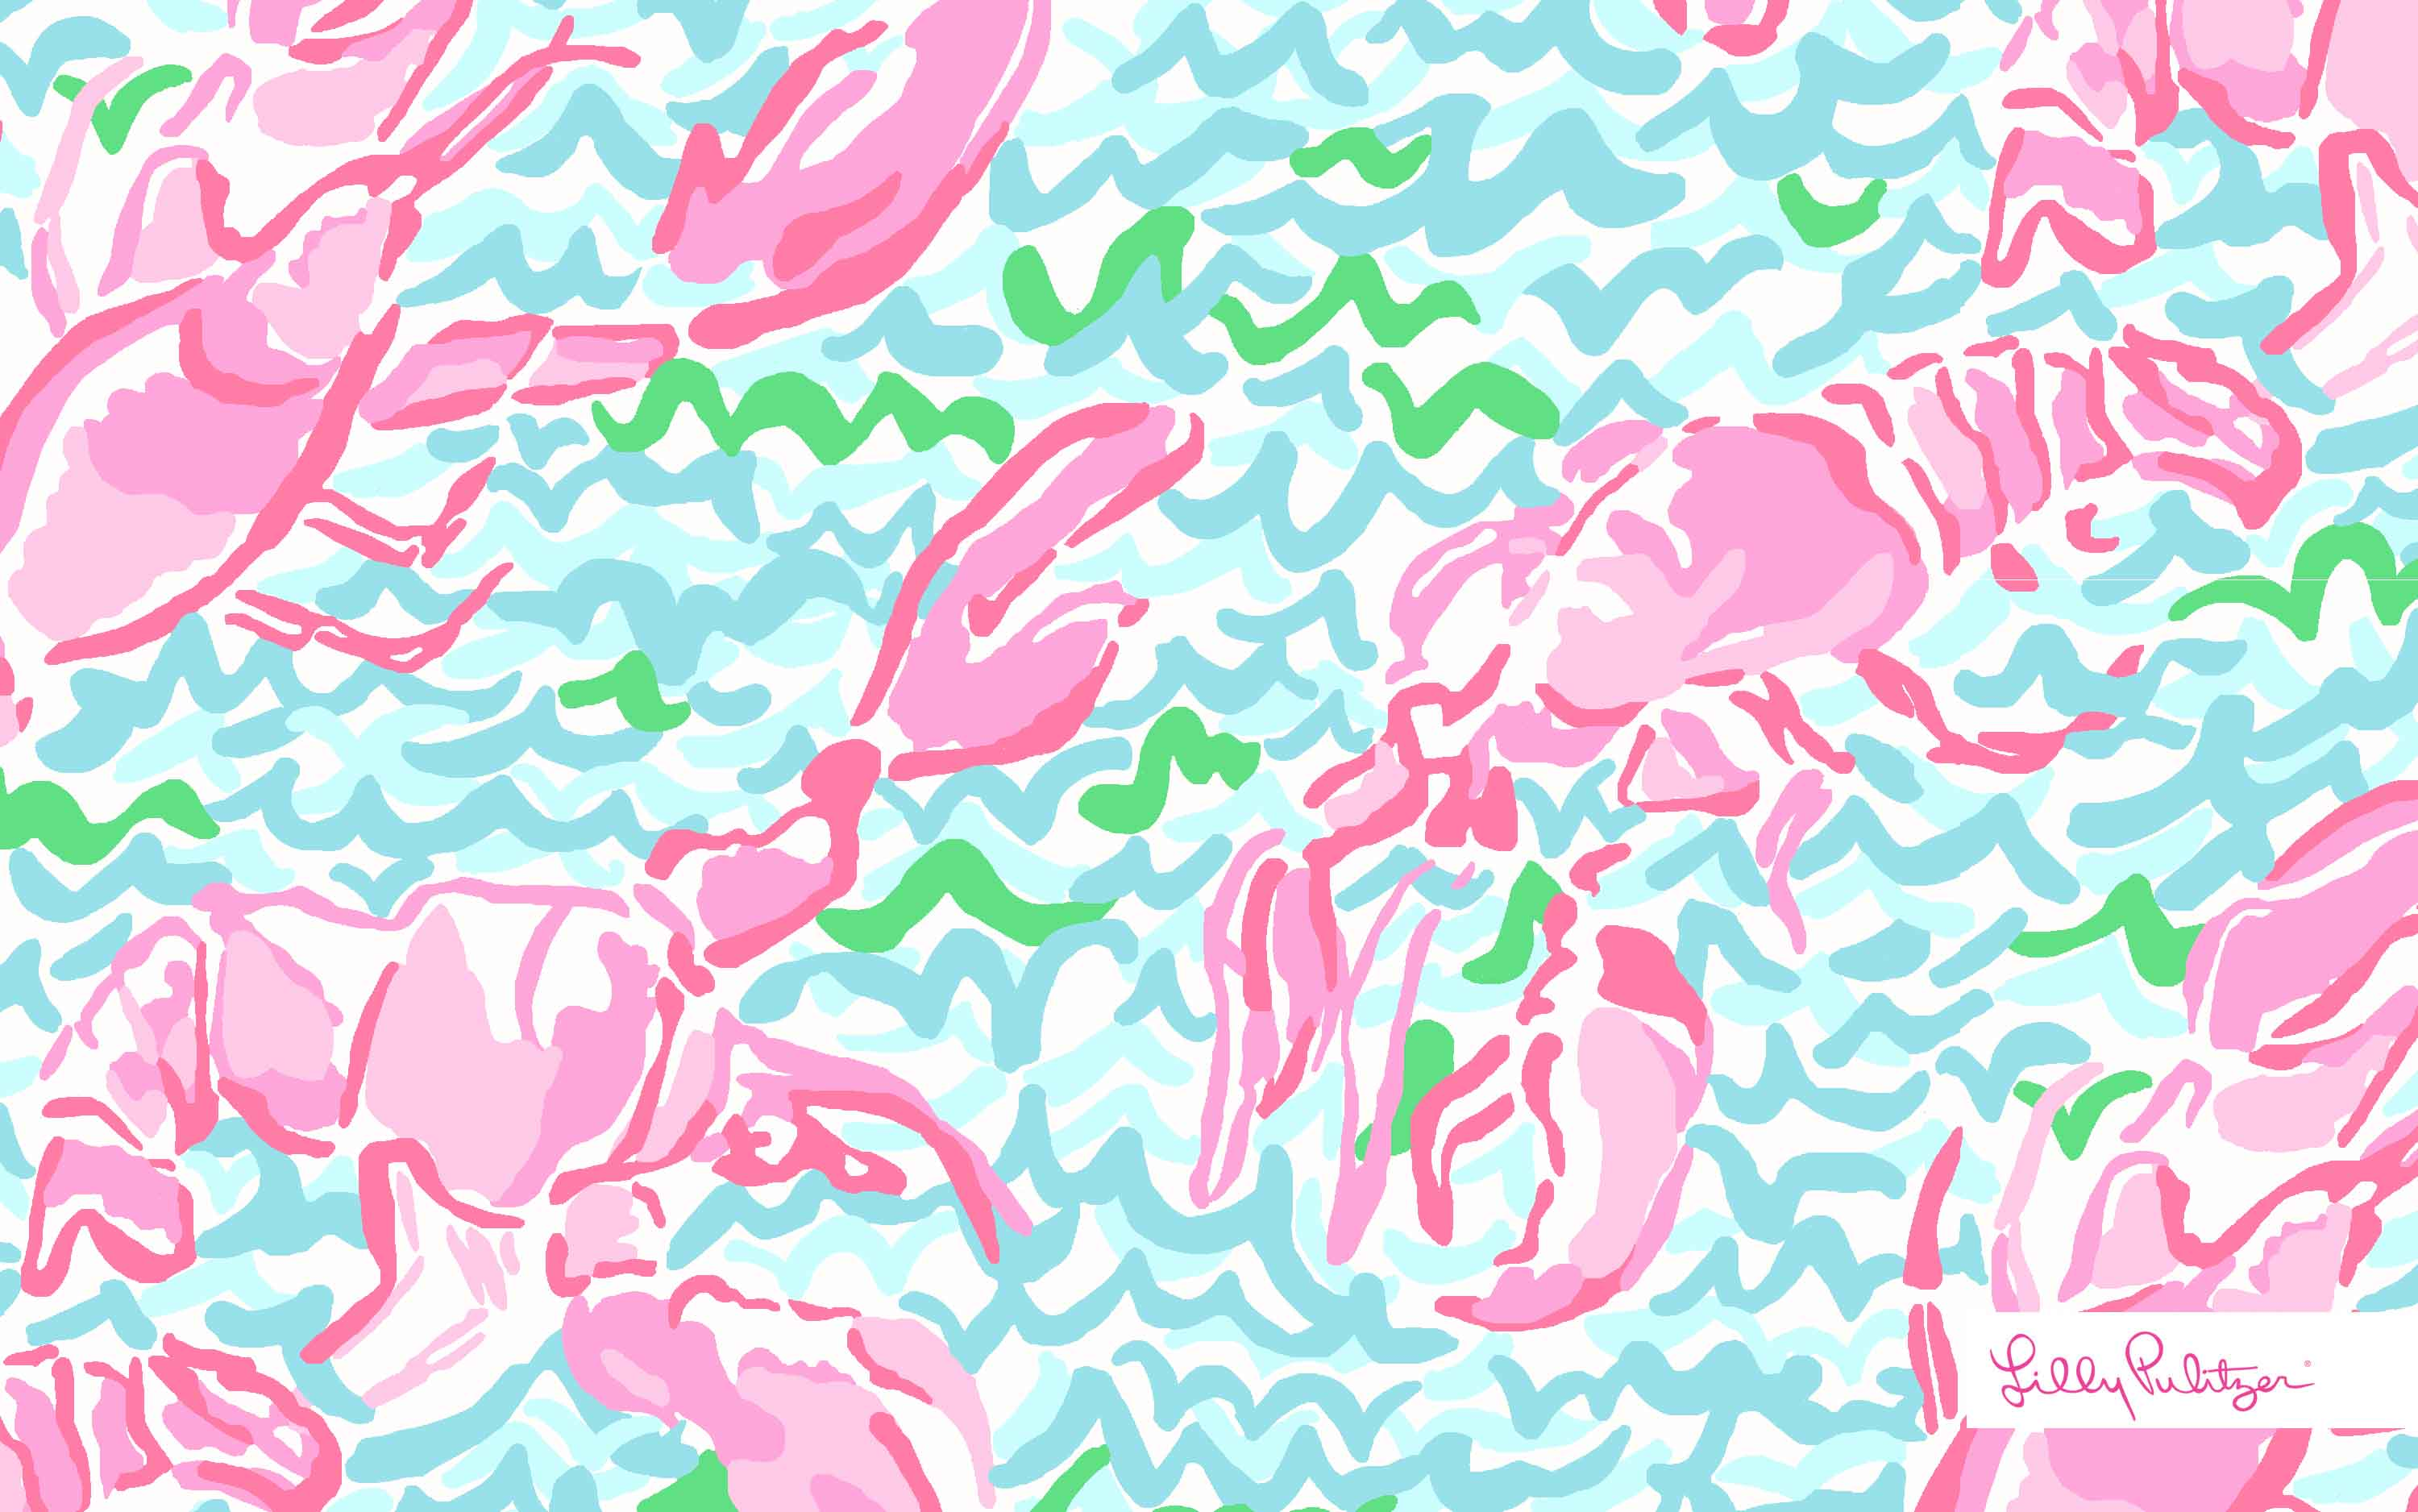 Displaying 20 Images For   Lilly Pulitzer Anchor Wallpaper 3000x1876